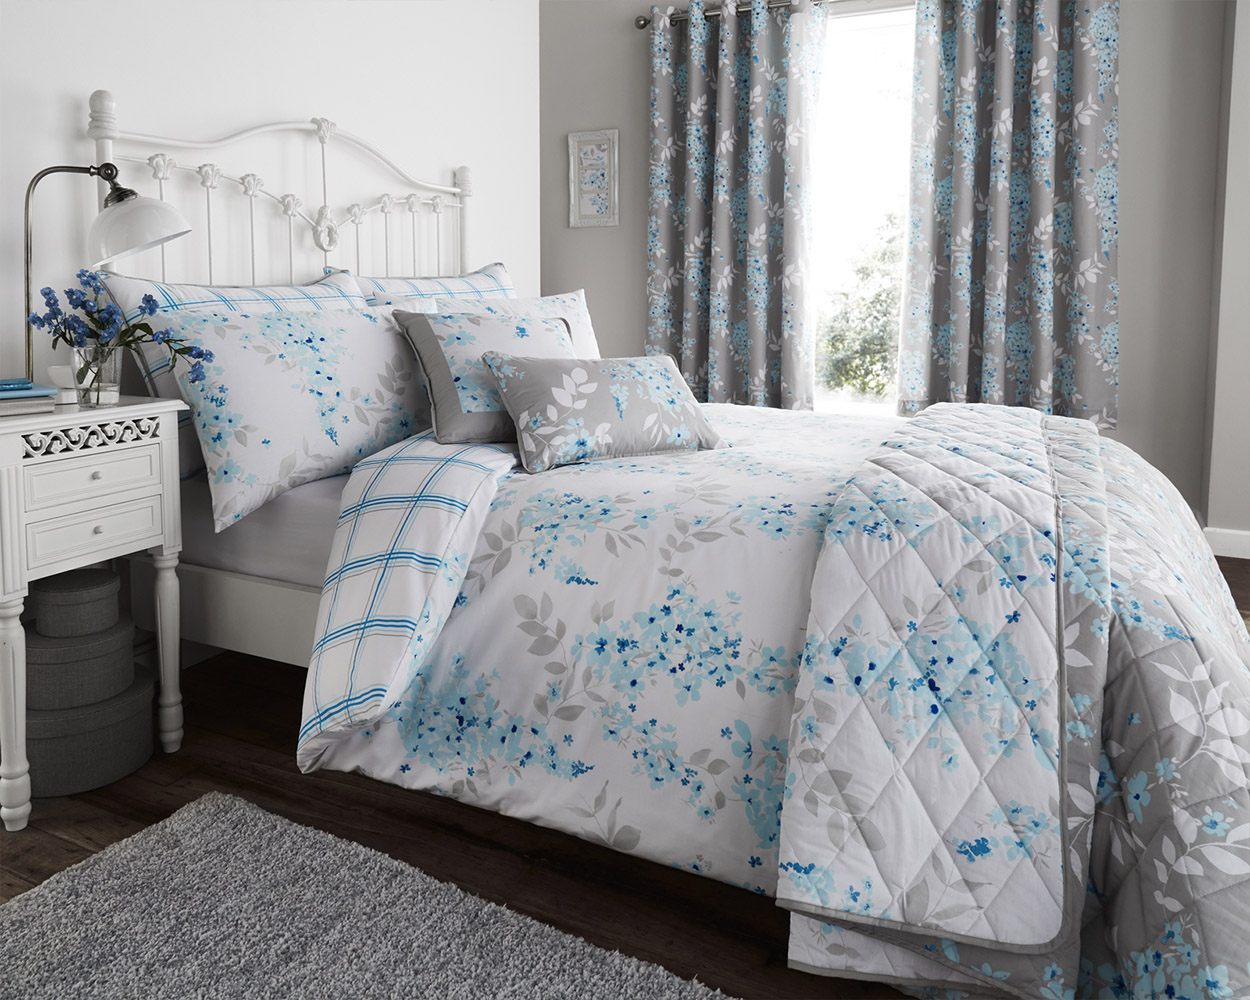 Cotton Rich Sophia Collection Design Duvet Set and Bedding Range in Duck Egg